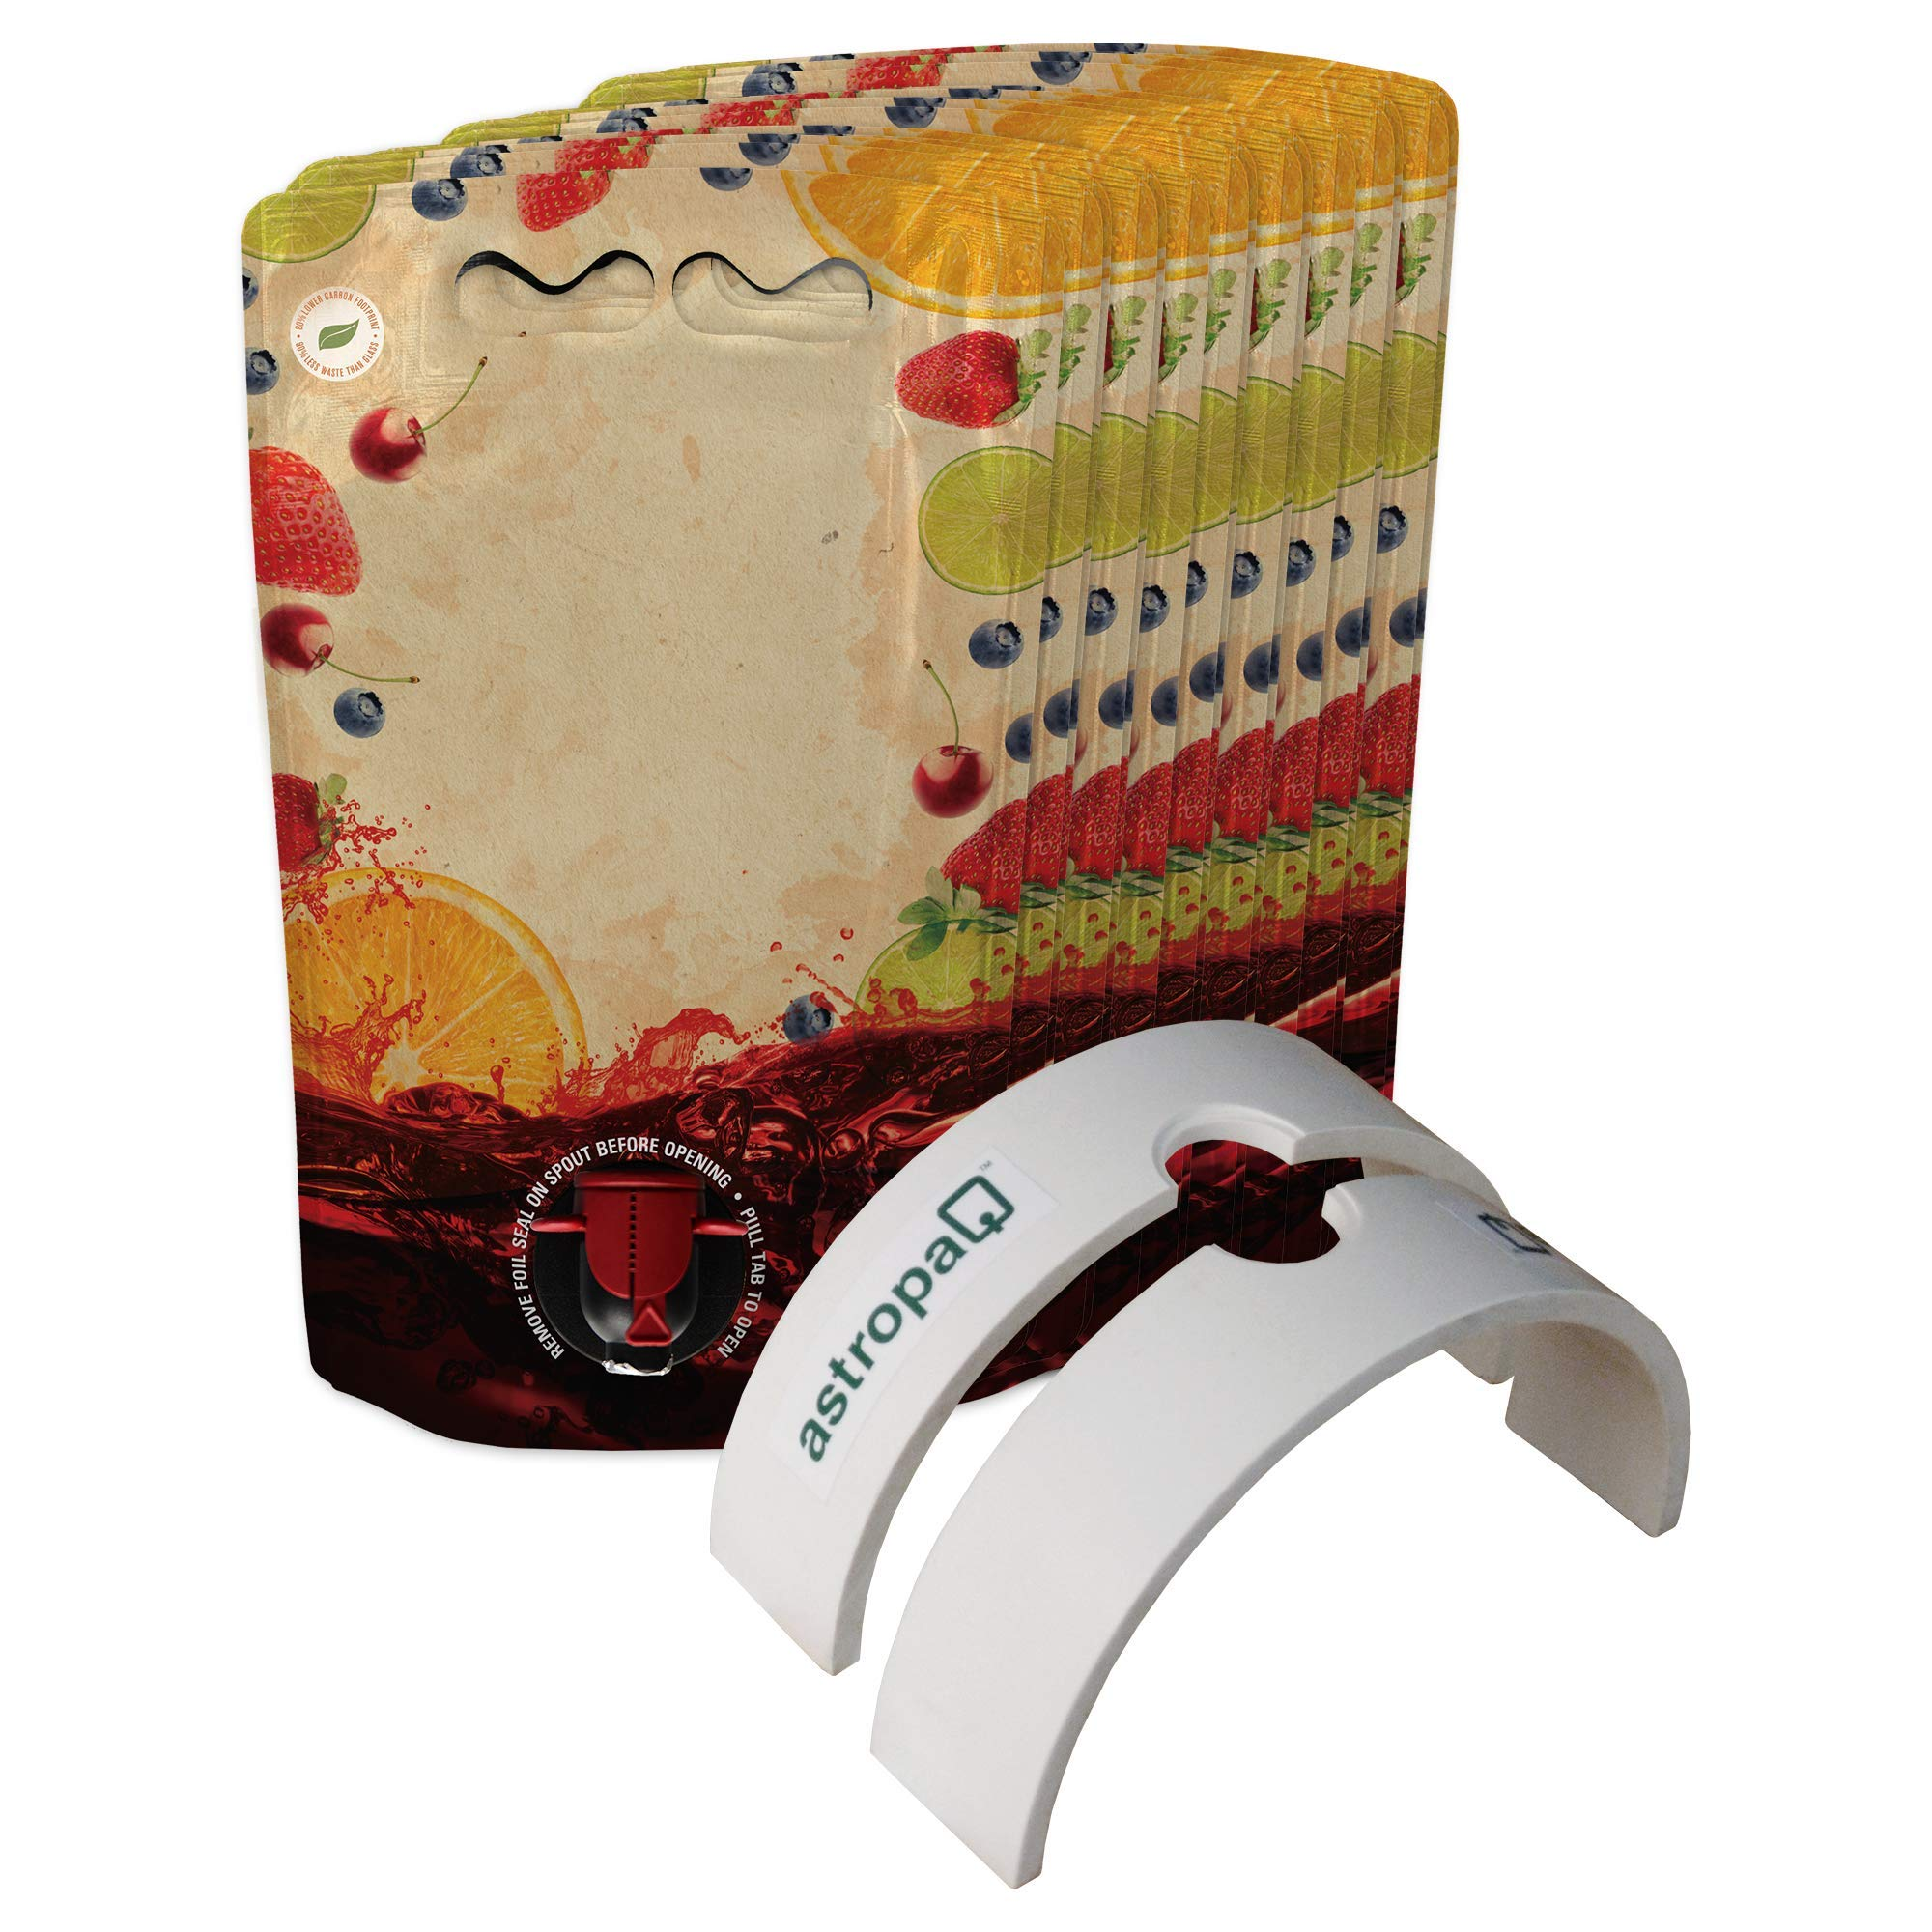 1.5L Sangria Pouch Storage and Dispensing Starter Kit - Everything You Need to Easily Bottle and Store Your Sangria in Convenient and Easy to Carry Pouches (15 x 1.5L Sangria Pouches)